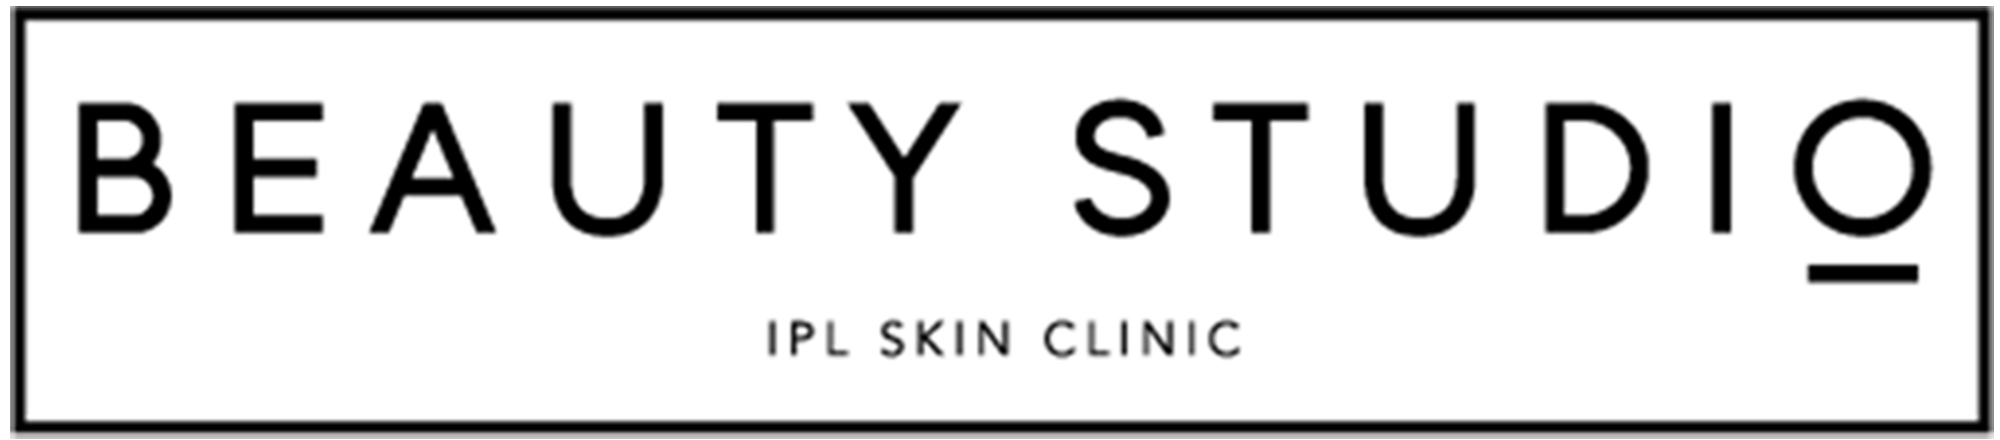 BEAUTY STUDIO IPL SKIN CLINIC